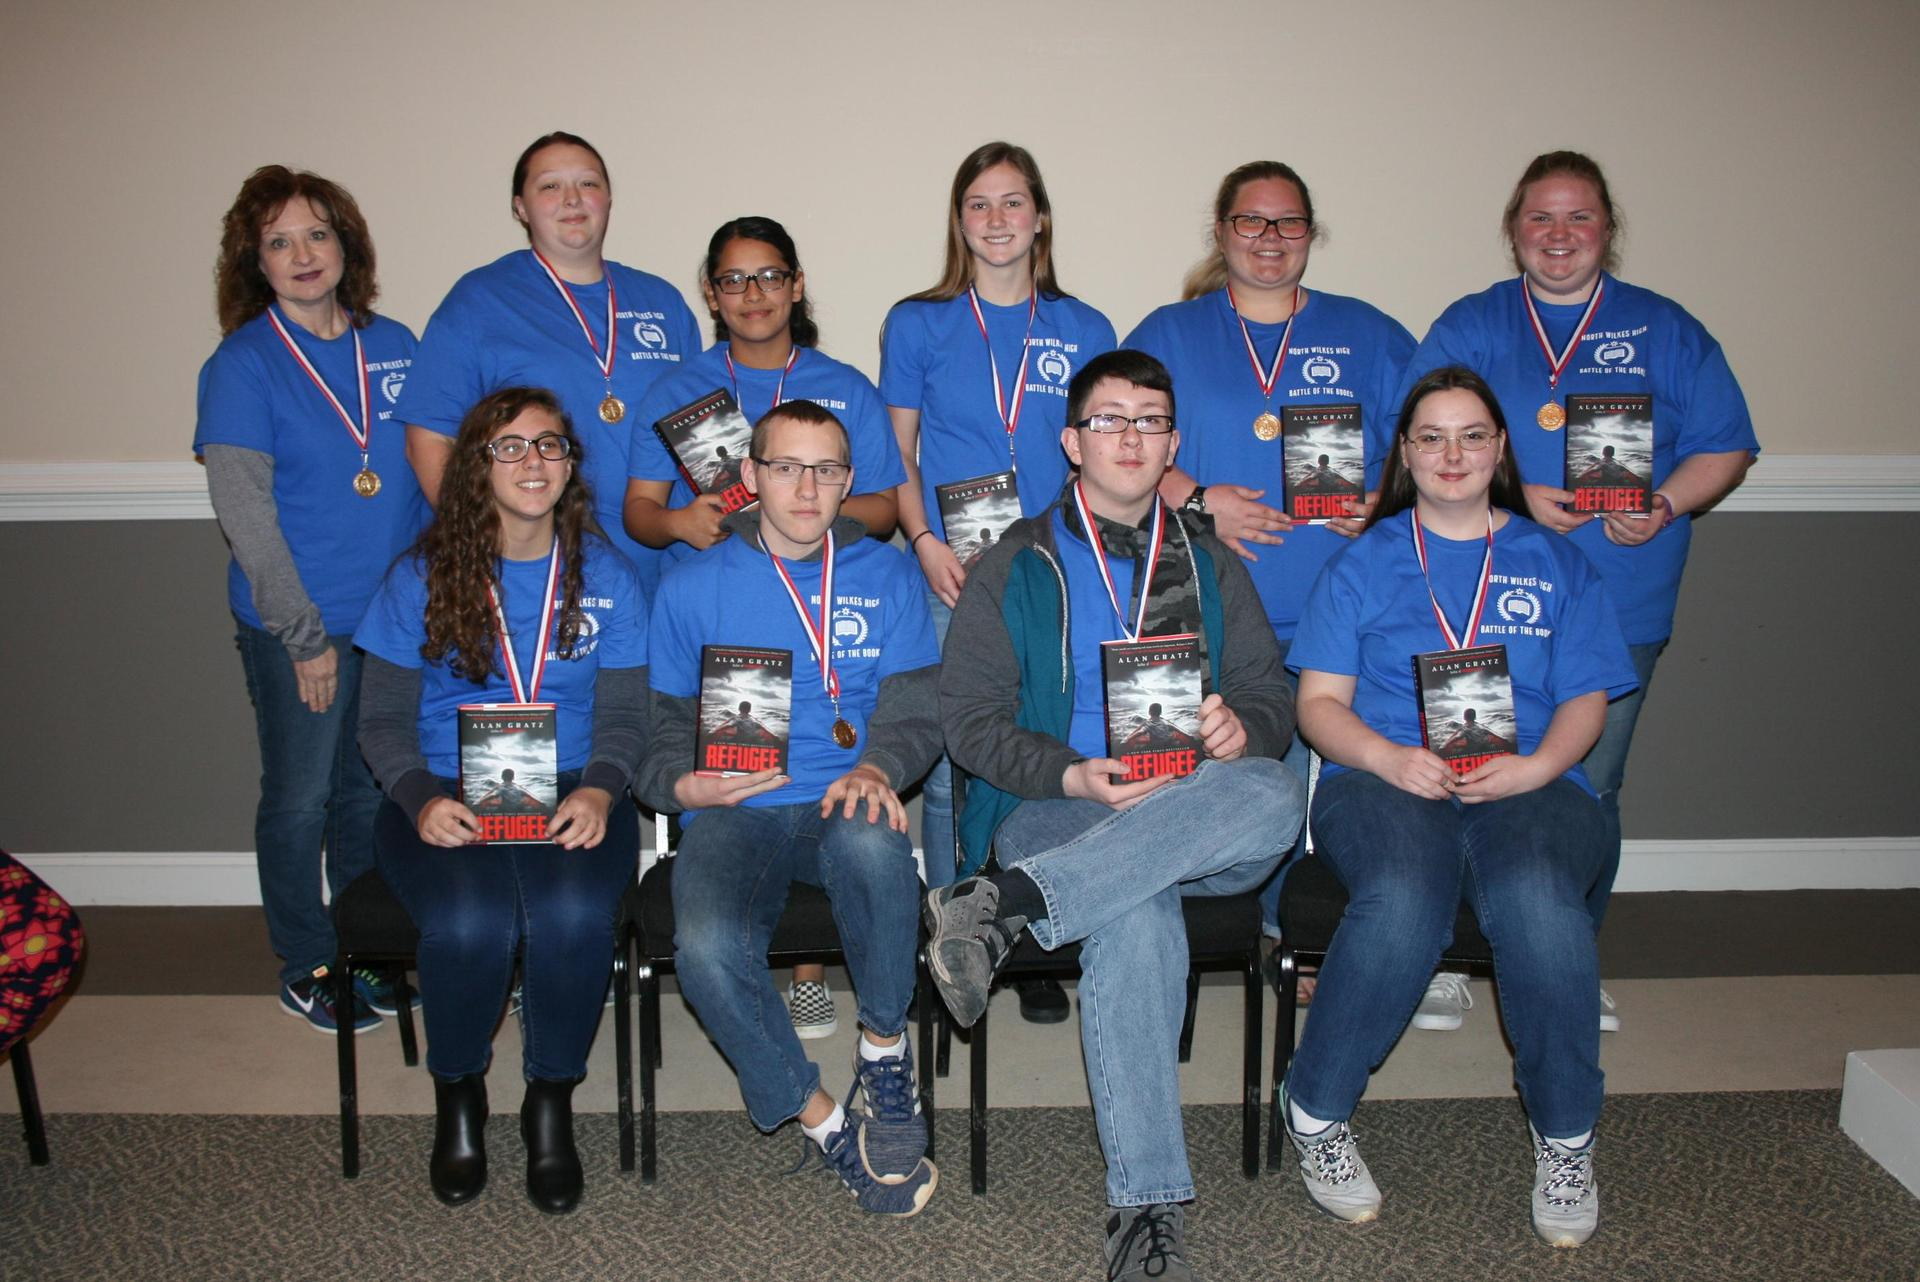 North Wilkes High Battle of Books Team